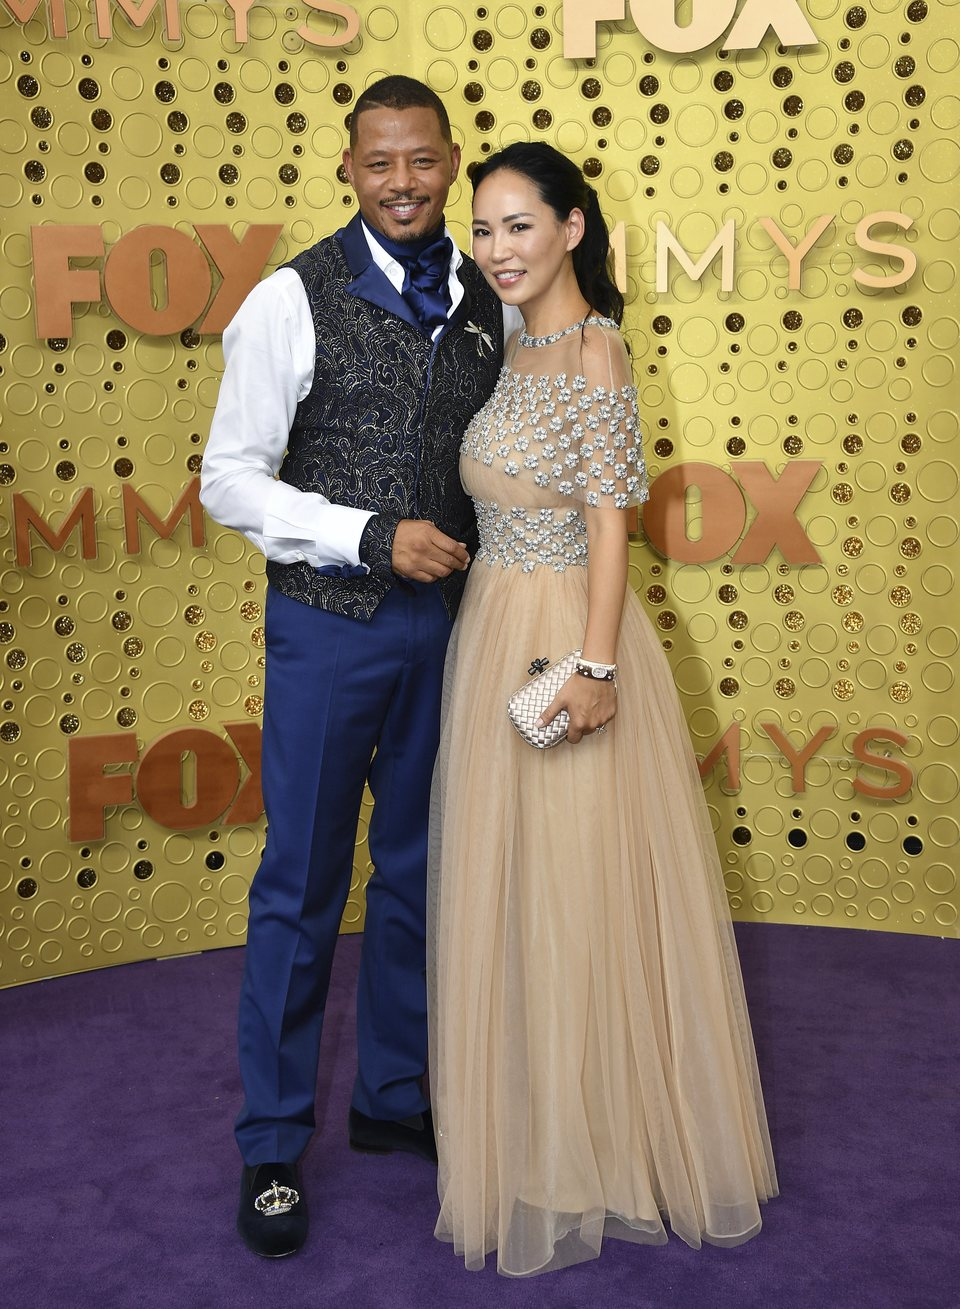 Terrence Howard at the Emmy 2019 red carpet